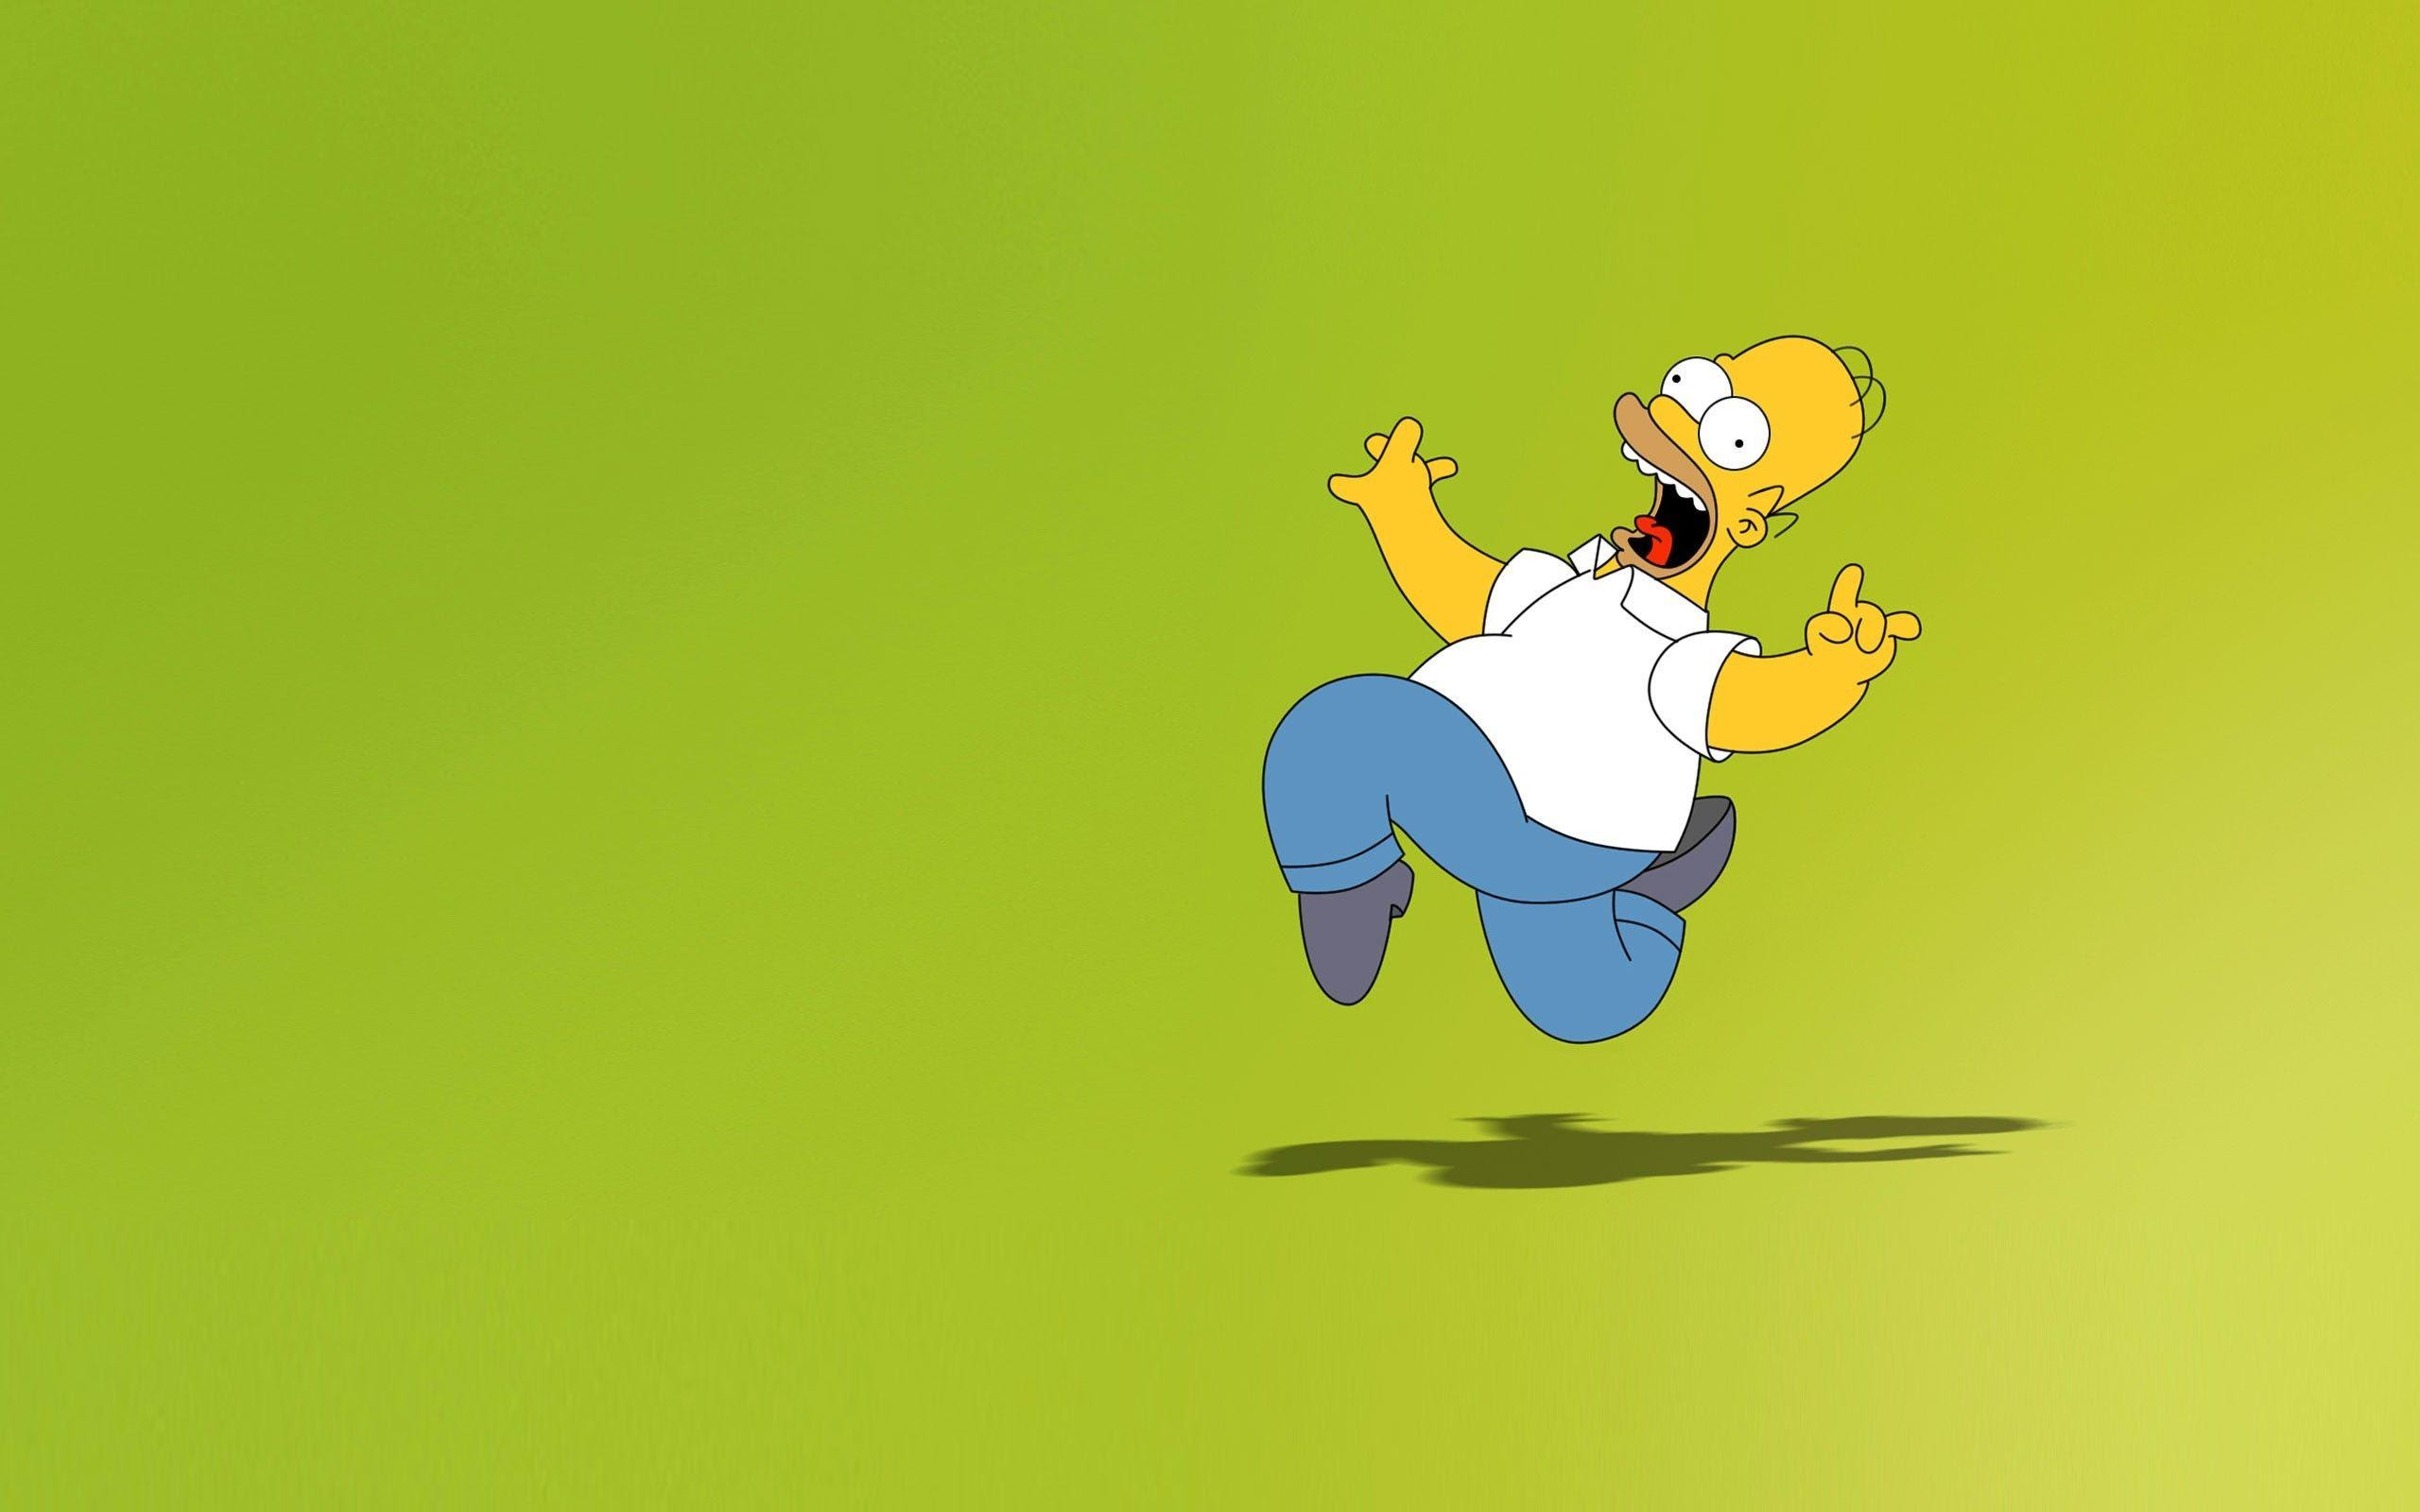 Kumpulan Homer Mac Wallpaper Hd Wallpaper Kartun